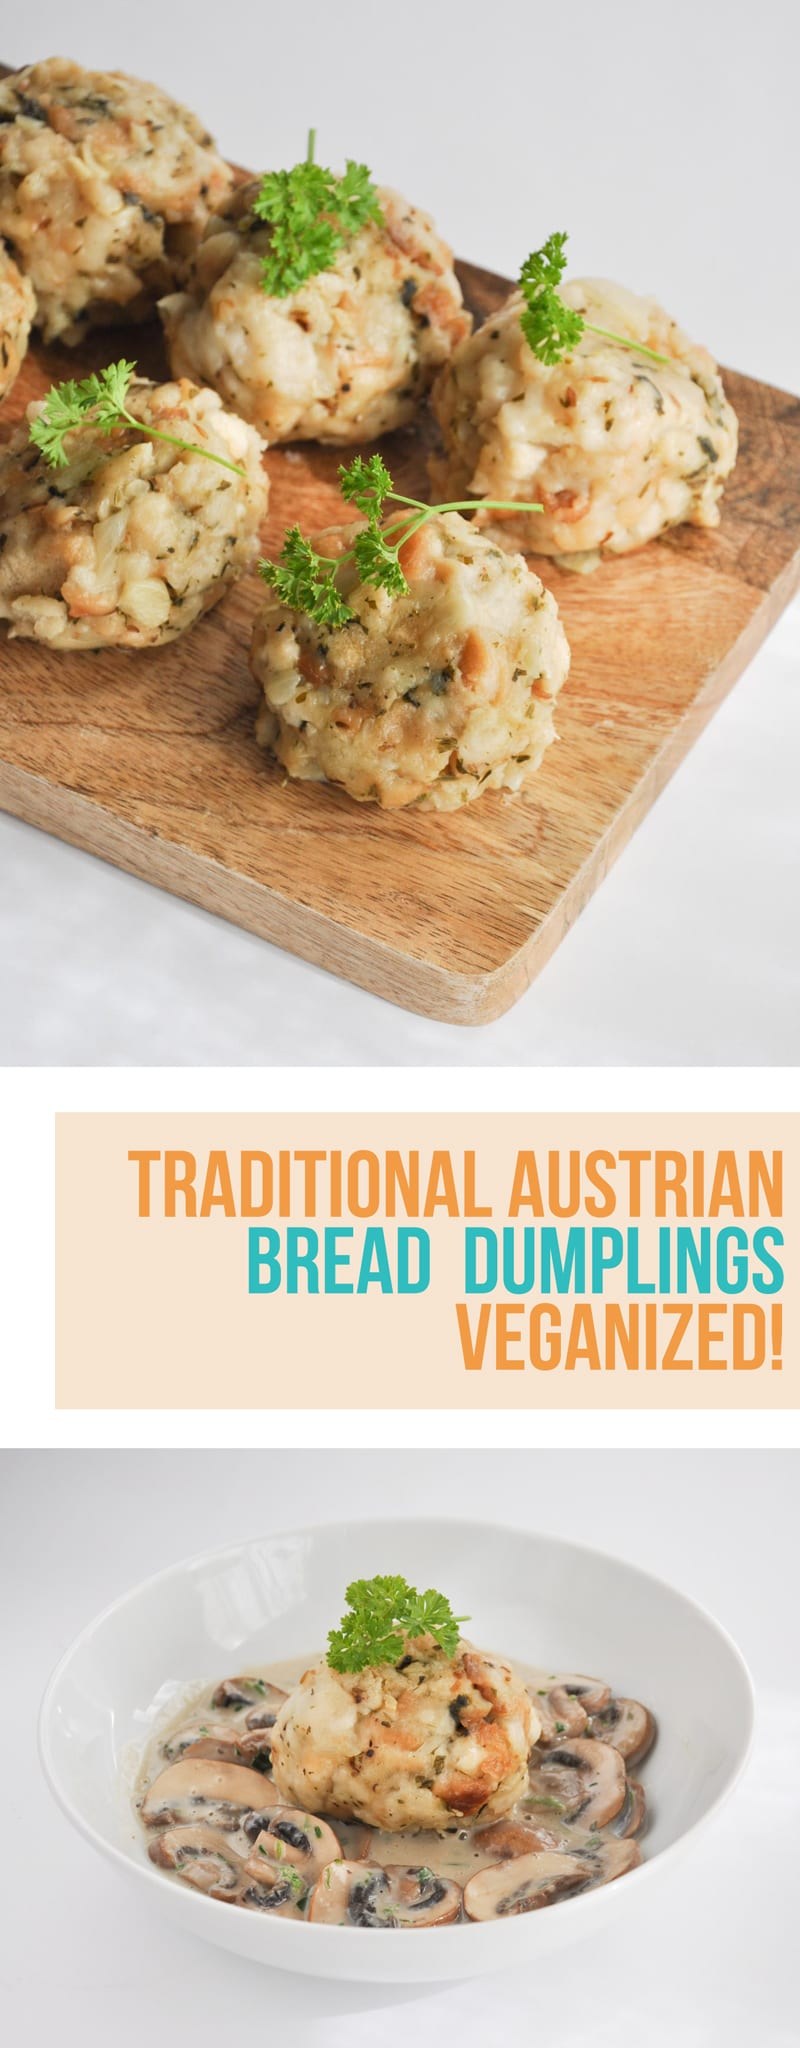 Vegan Bread Dumplings | ElephantasticVegan.com